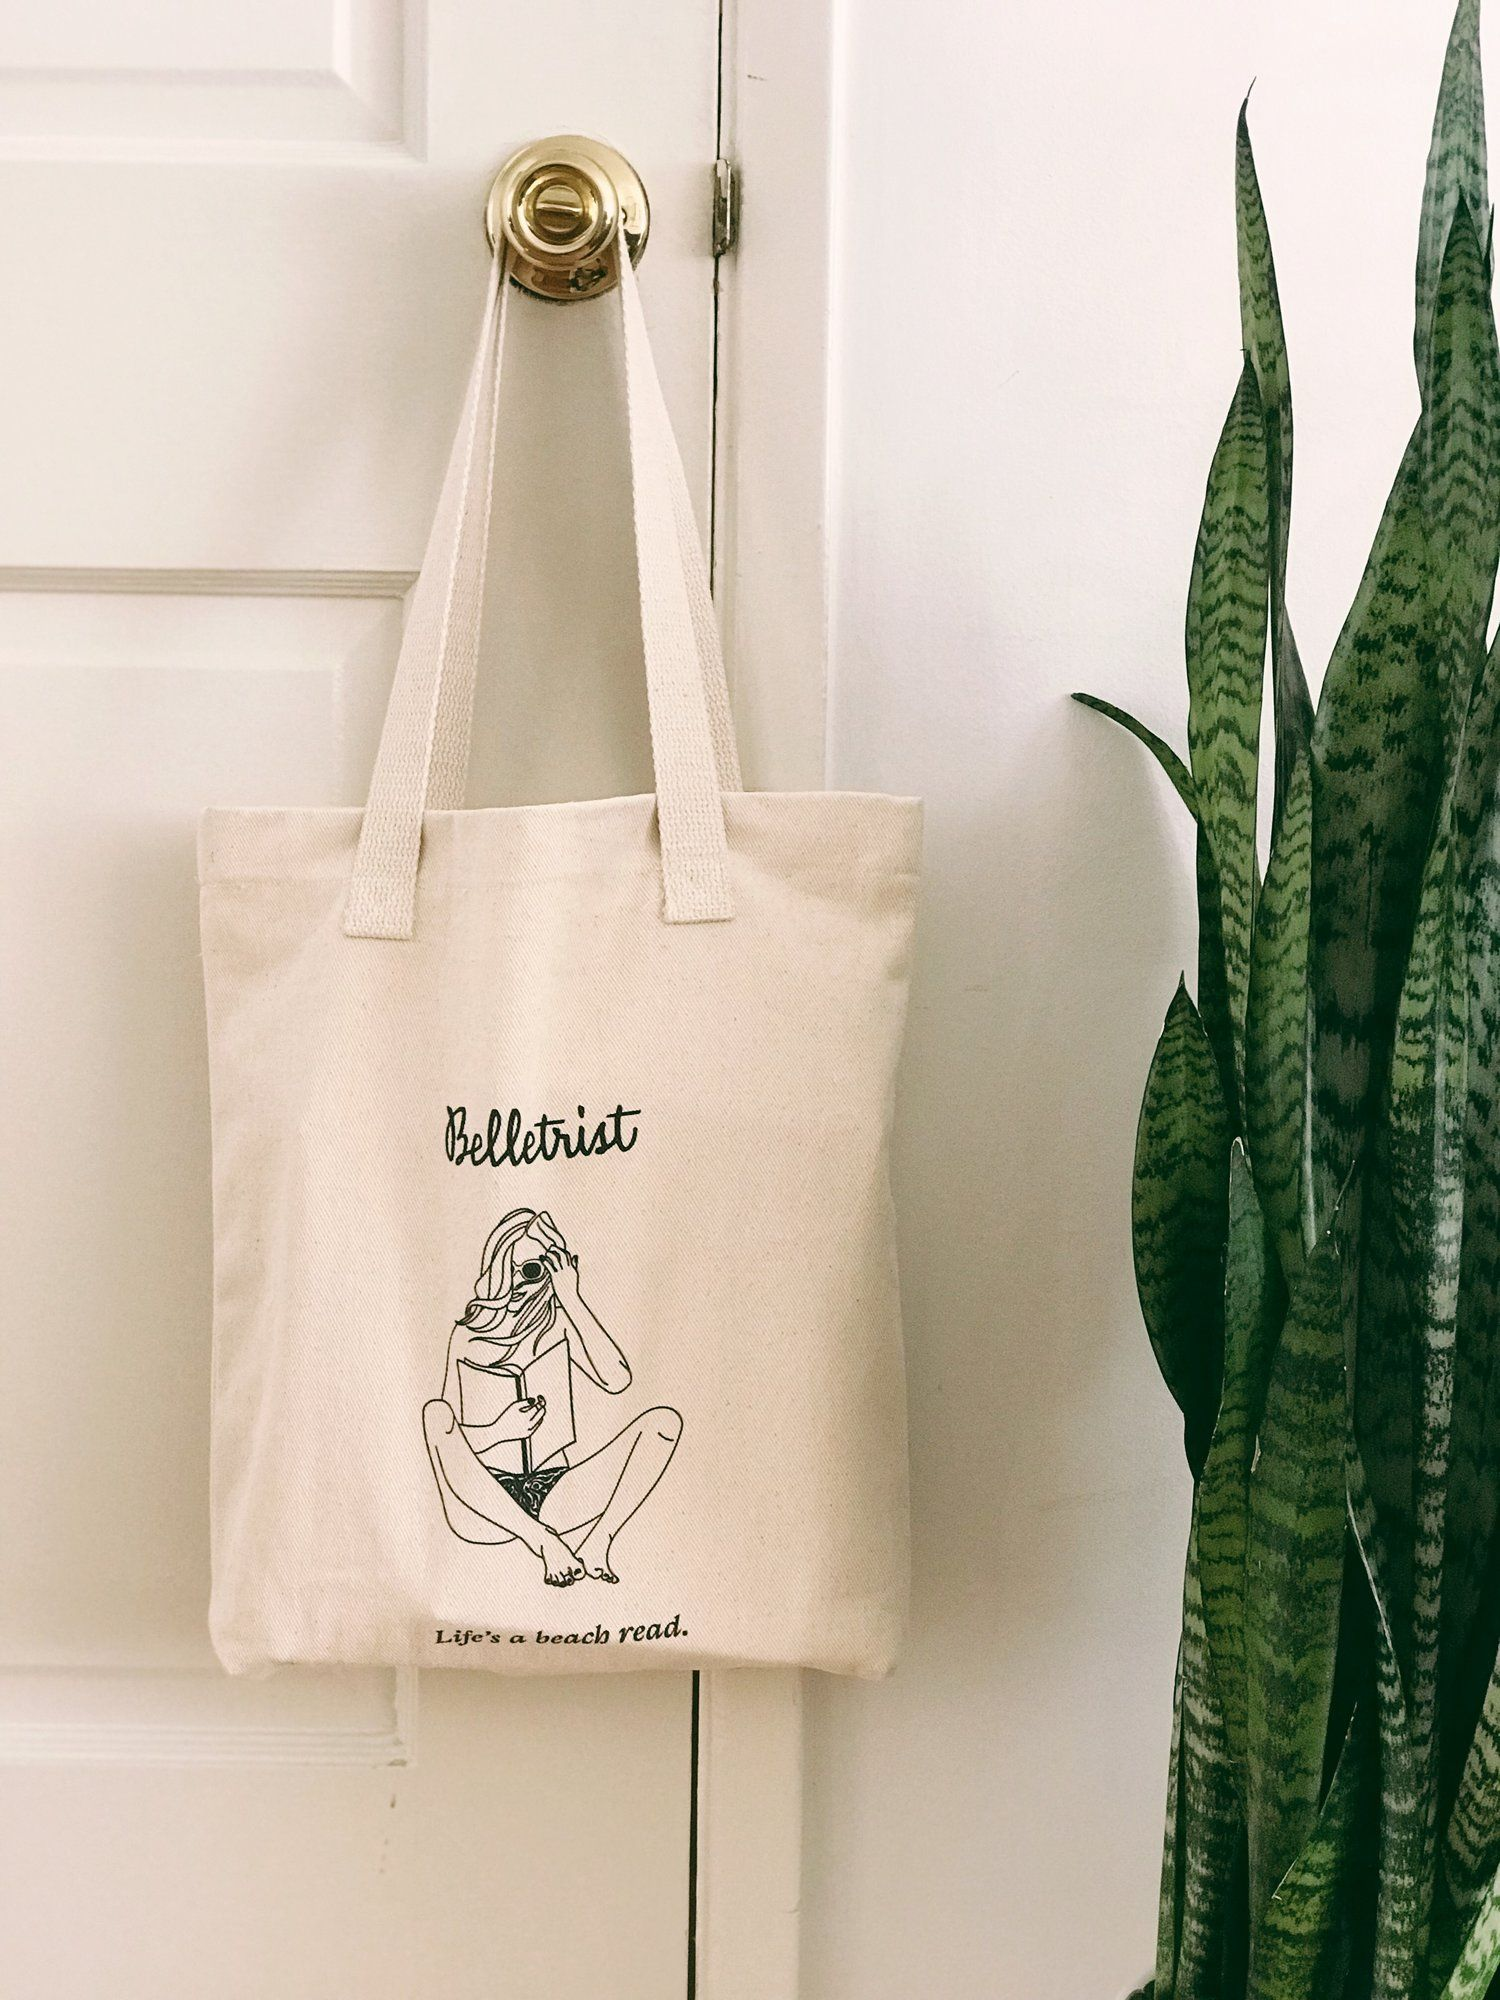 Bookish Tote Bags For Your Favorite Reads. Belletrist tote 02cbee2bef9de